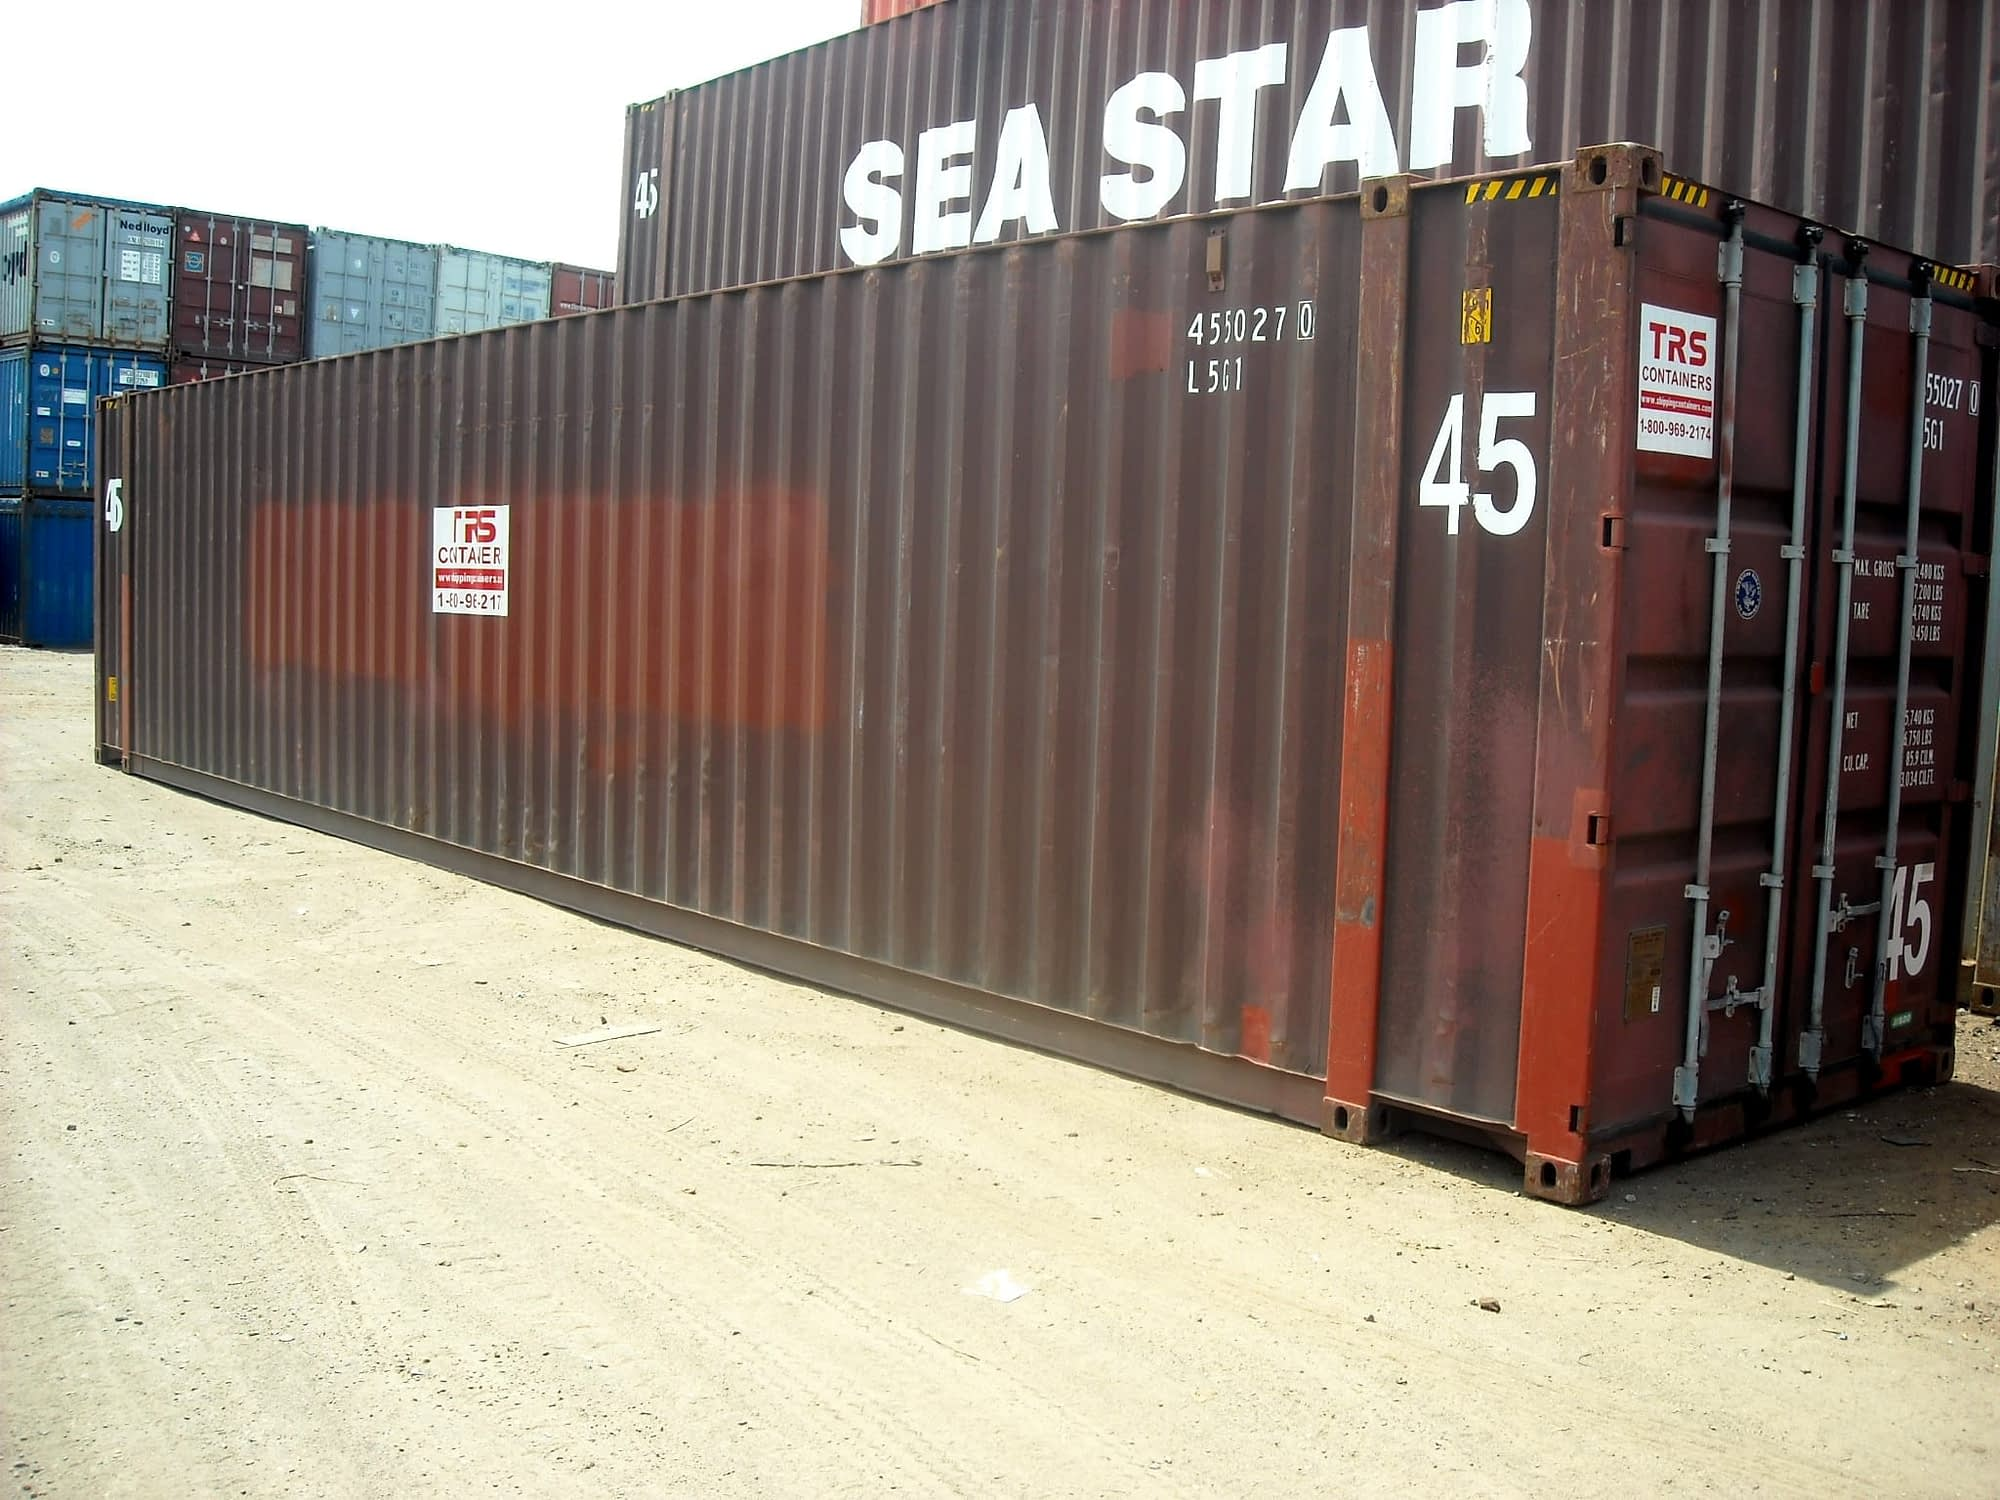 TRS Containers sells and rents 45 foo tlong highcube containers